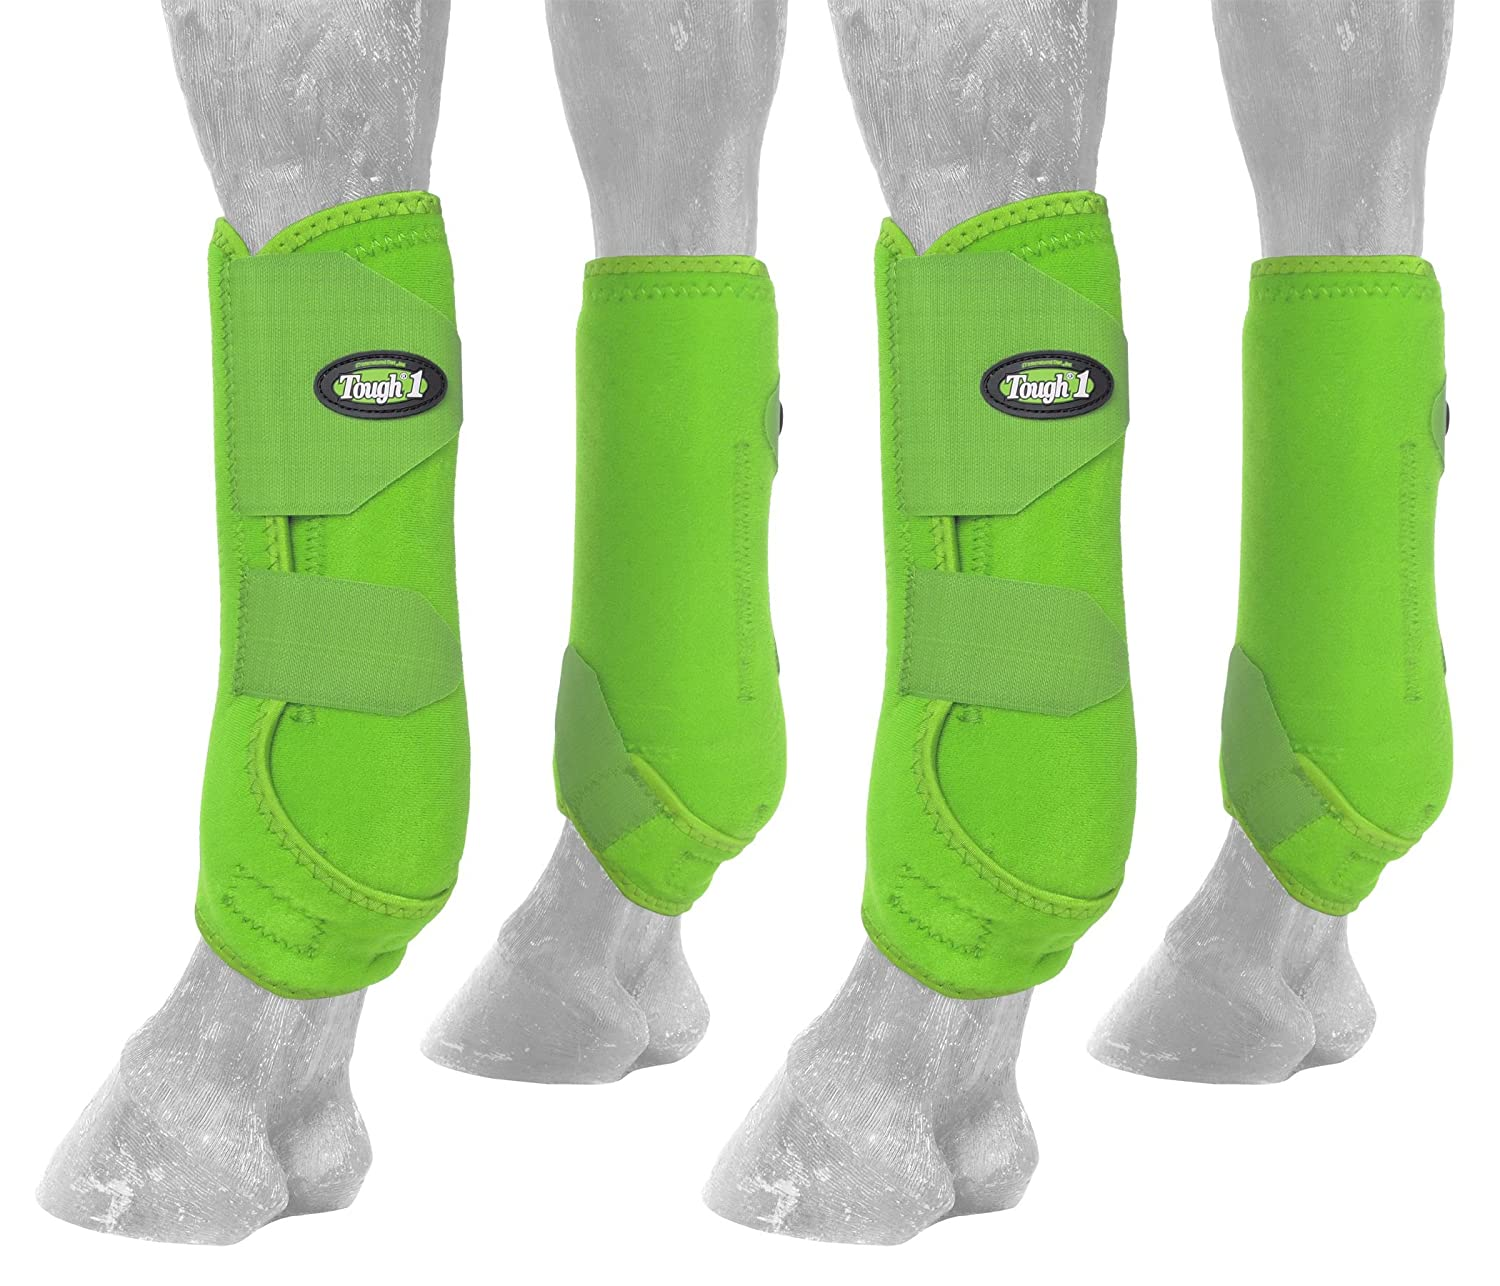 Neon Green Small Neon Green Small Tough 1 Extreme Vented Sport Boots Set